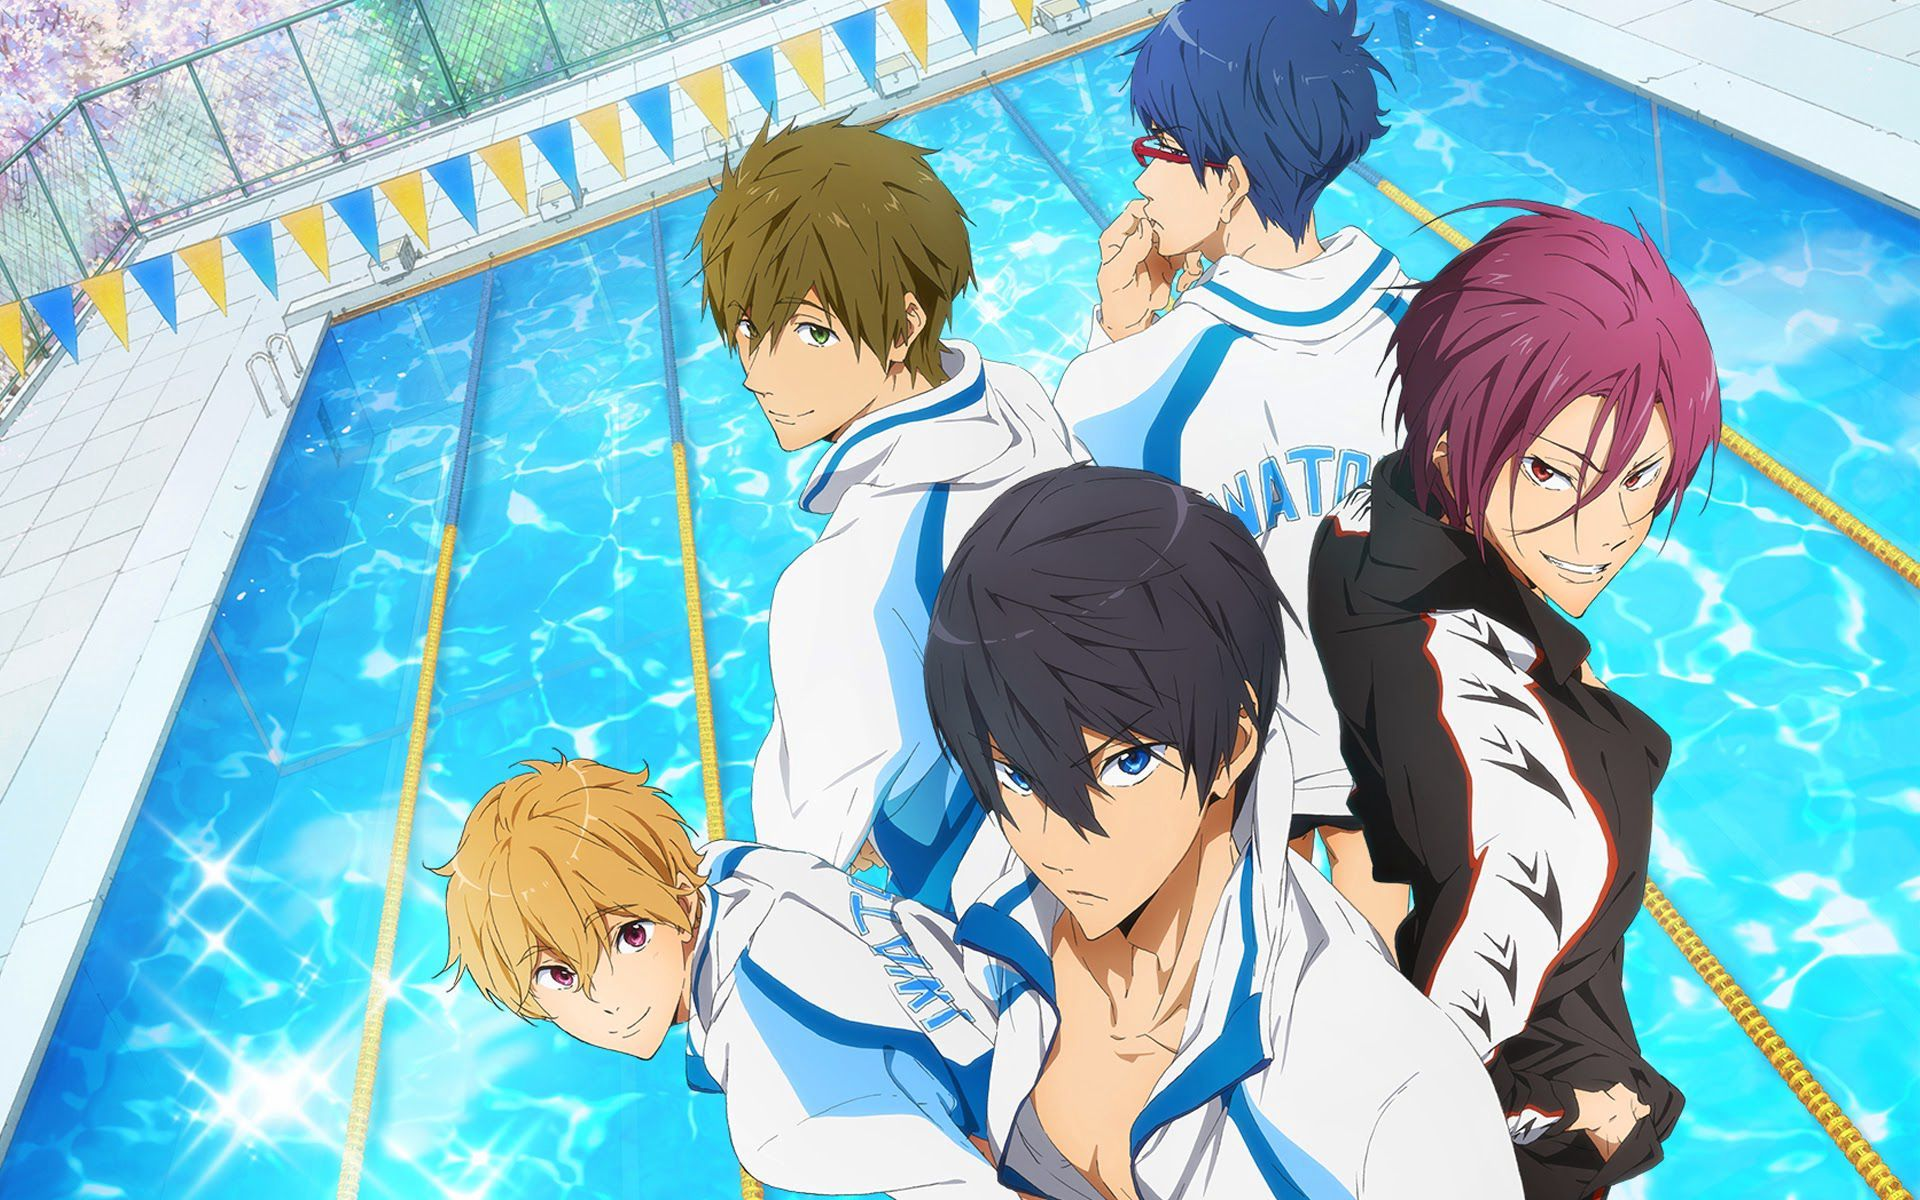 After all, it was all about the relay, right? Why else would you swim, except to be with your friends in a relay?